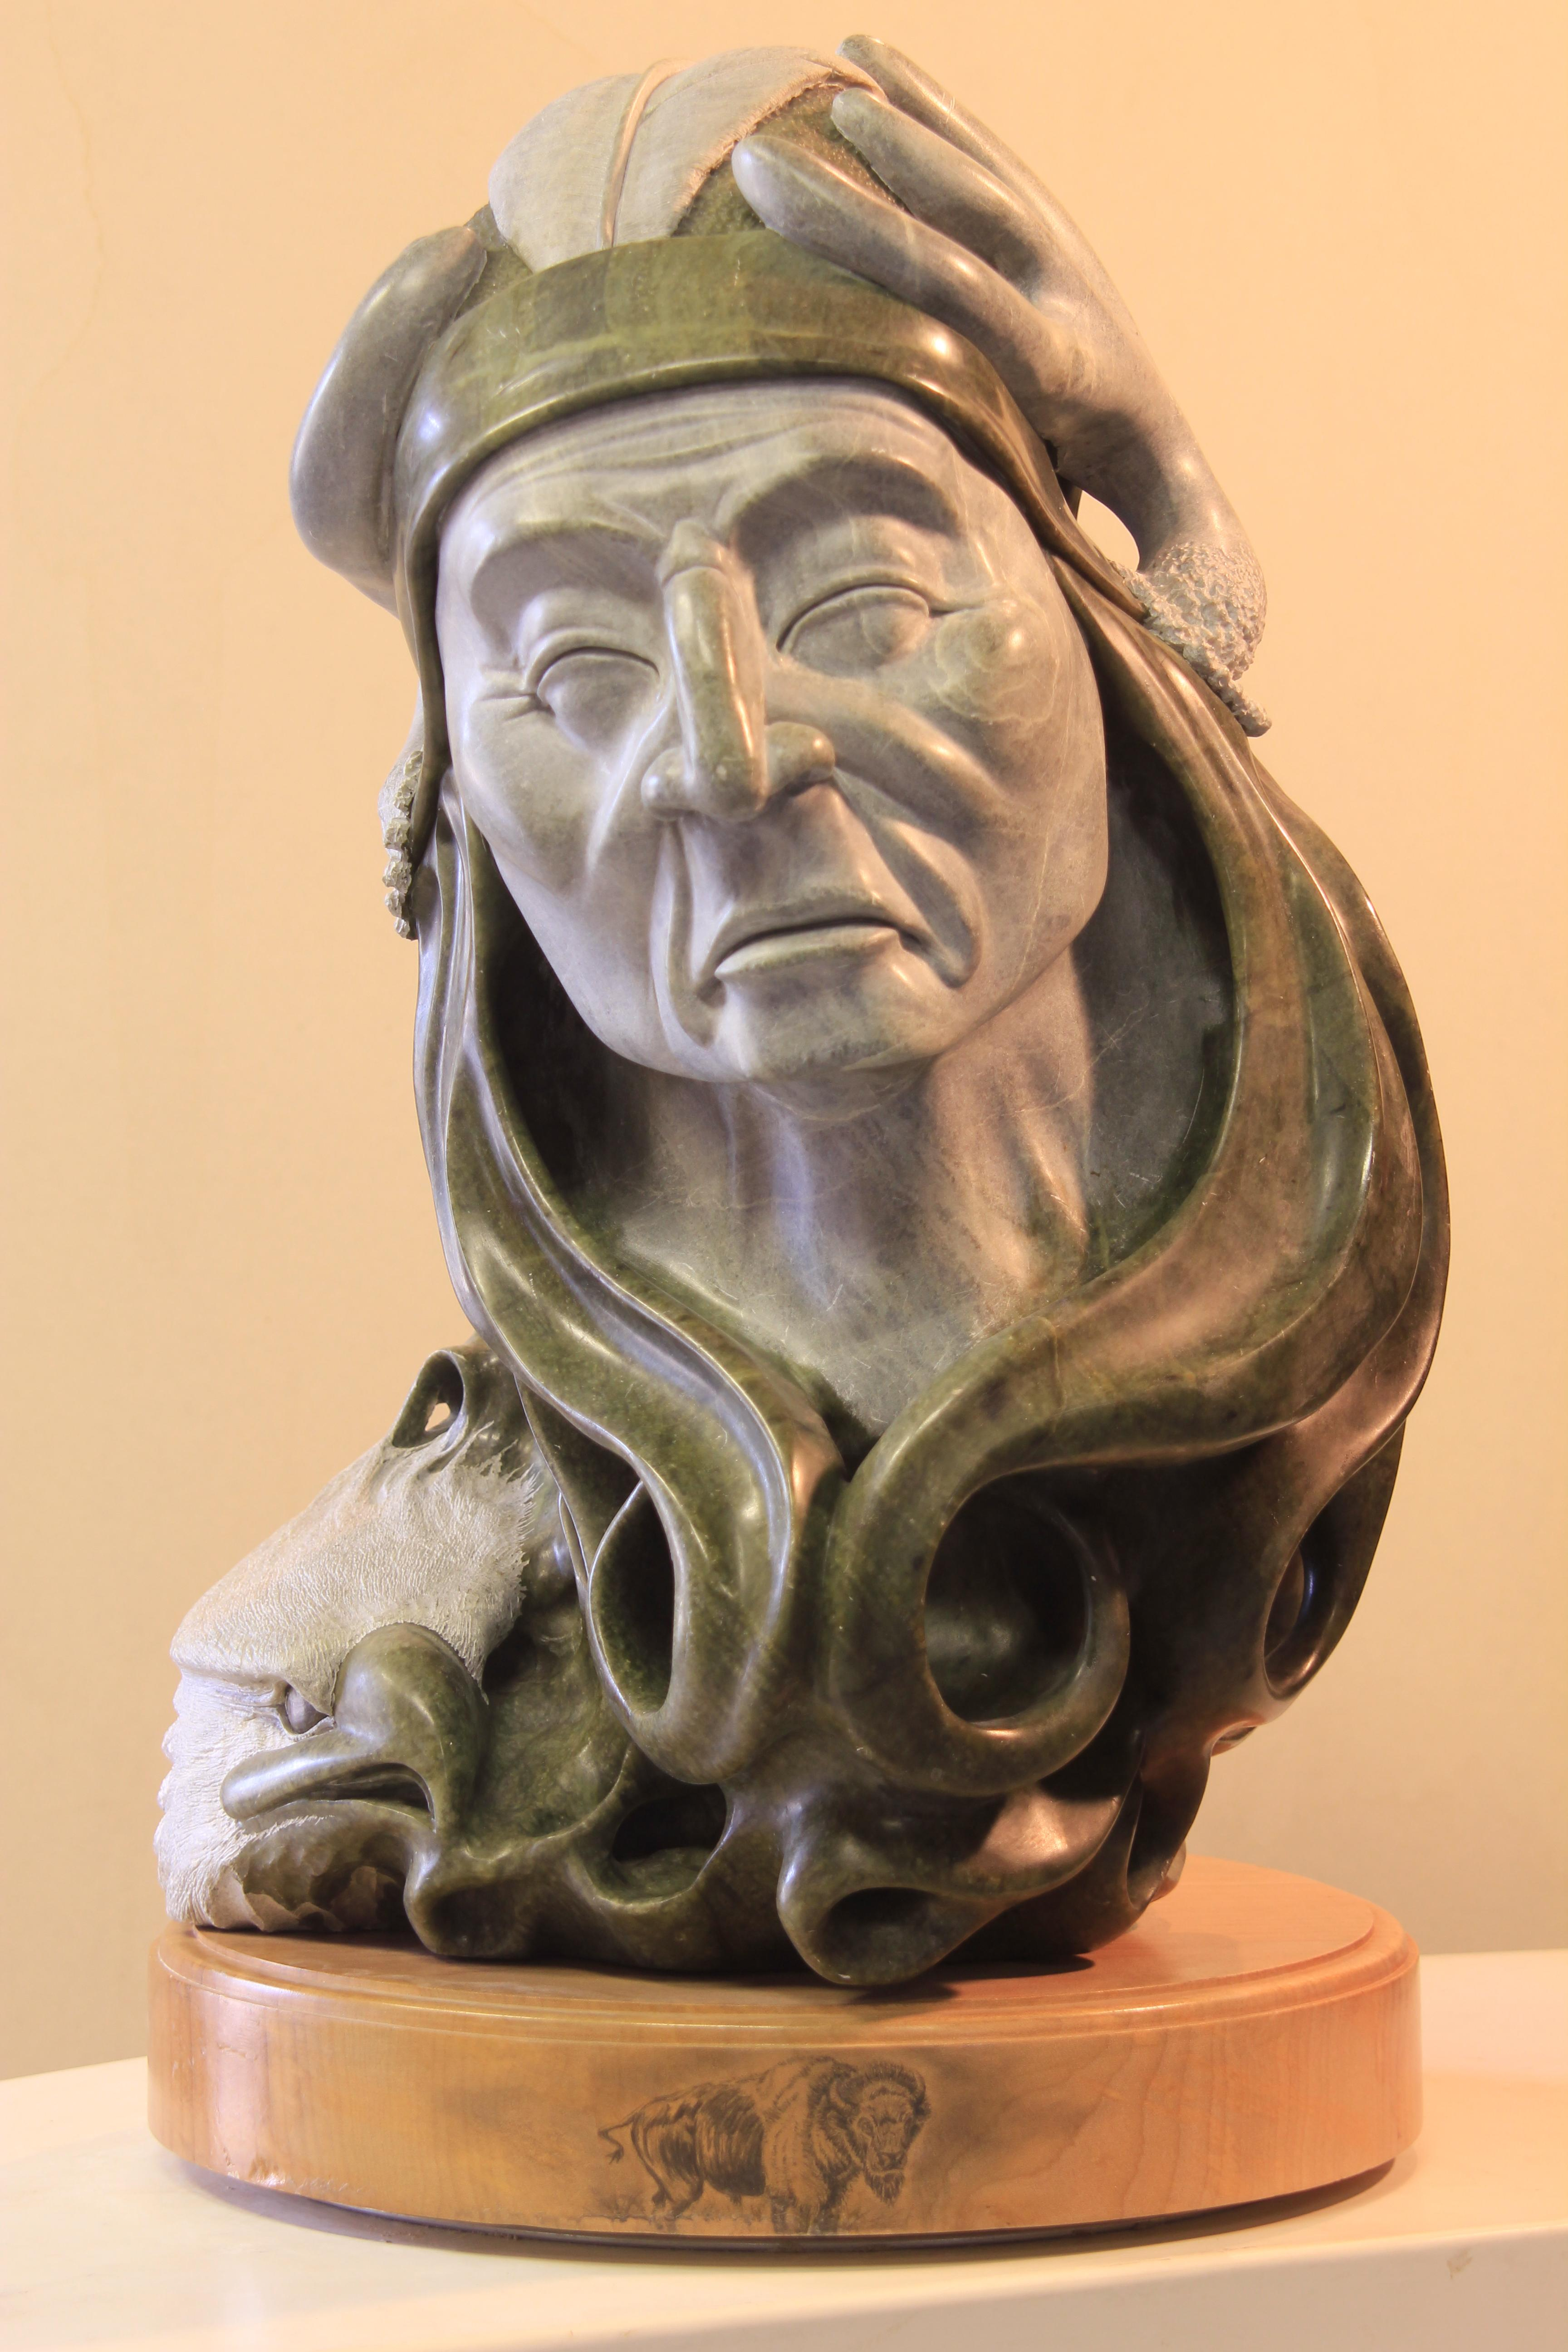 Soapstone carvings by kevin peters sculptures